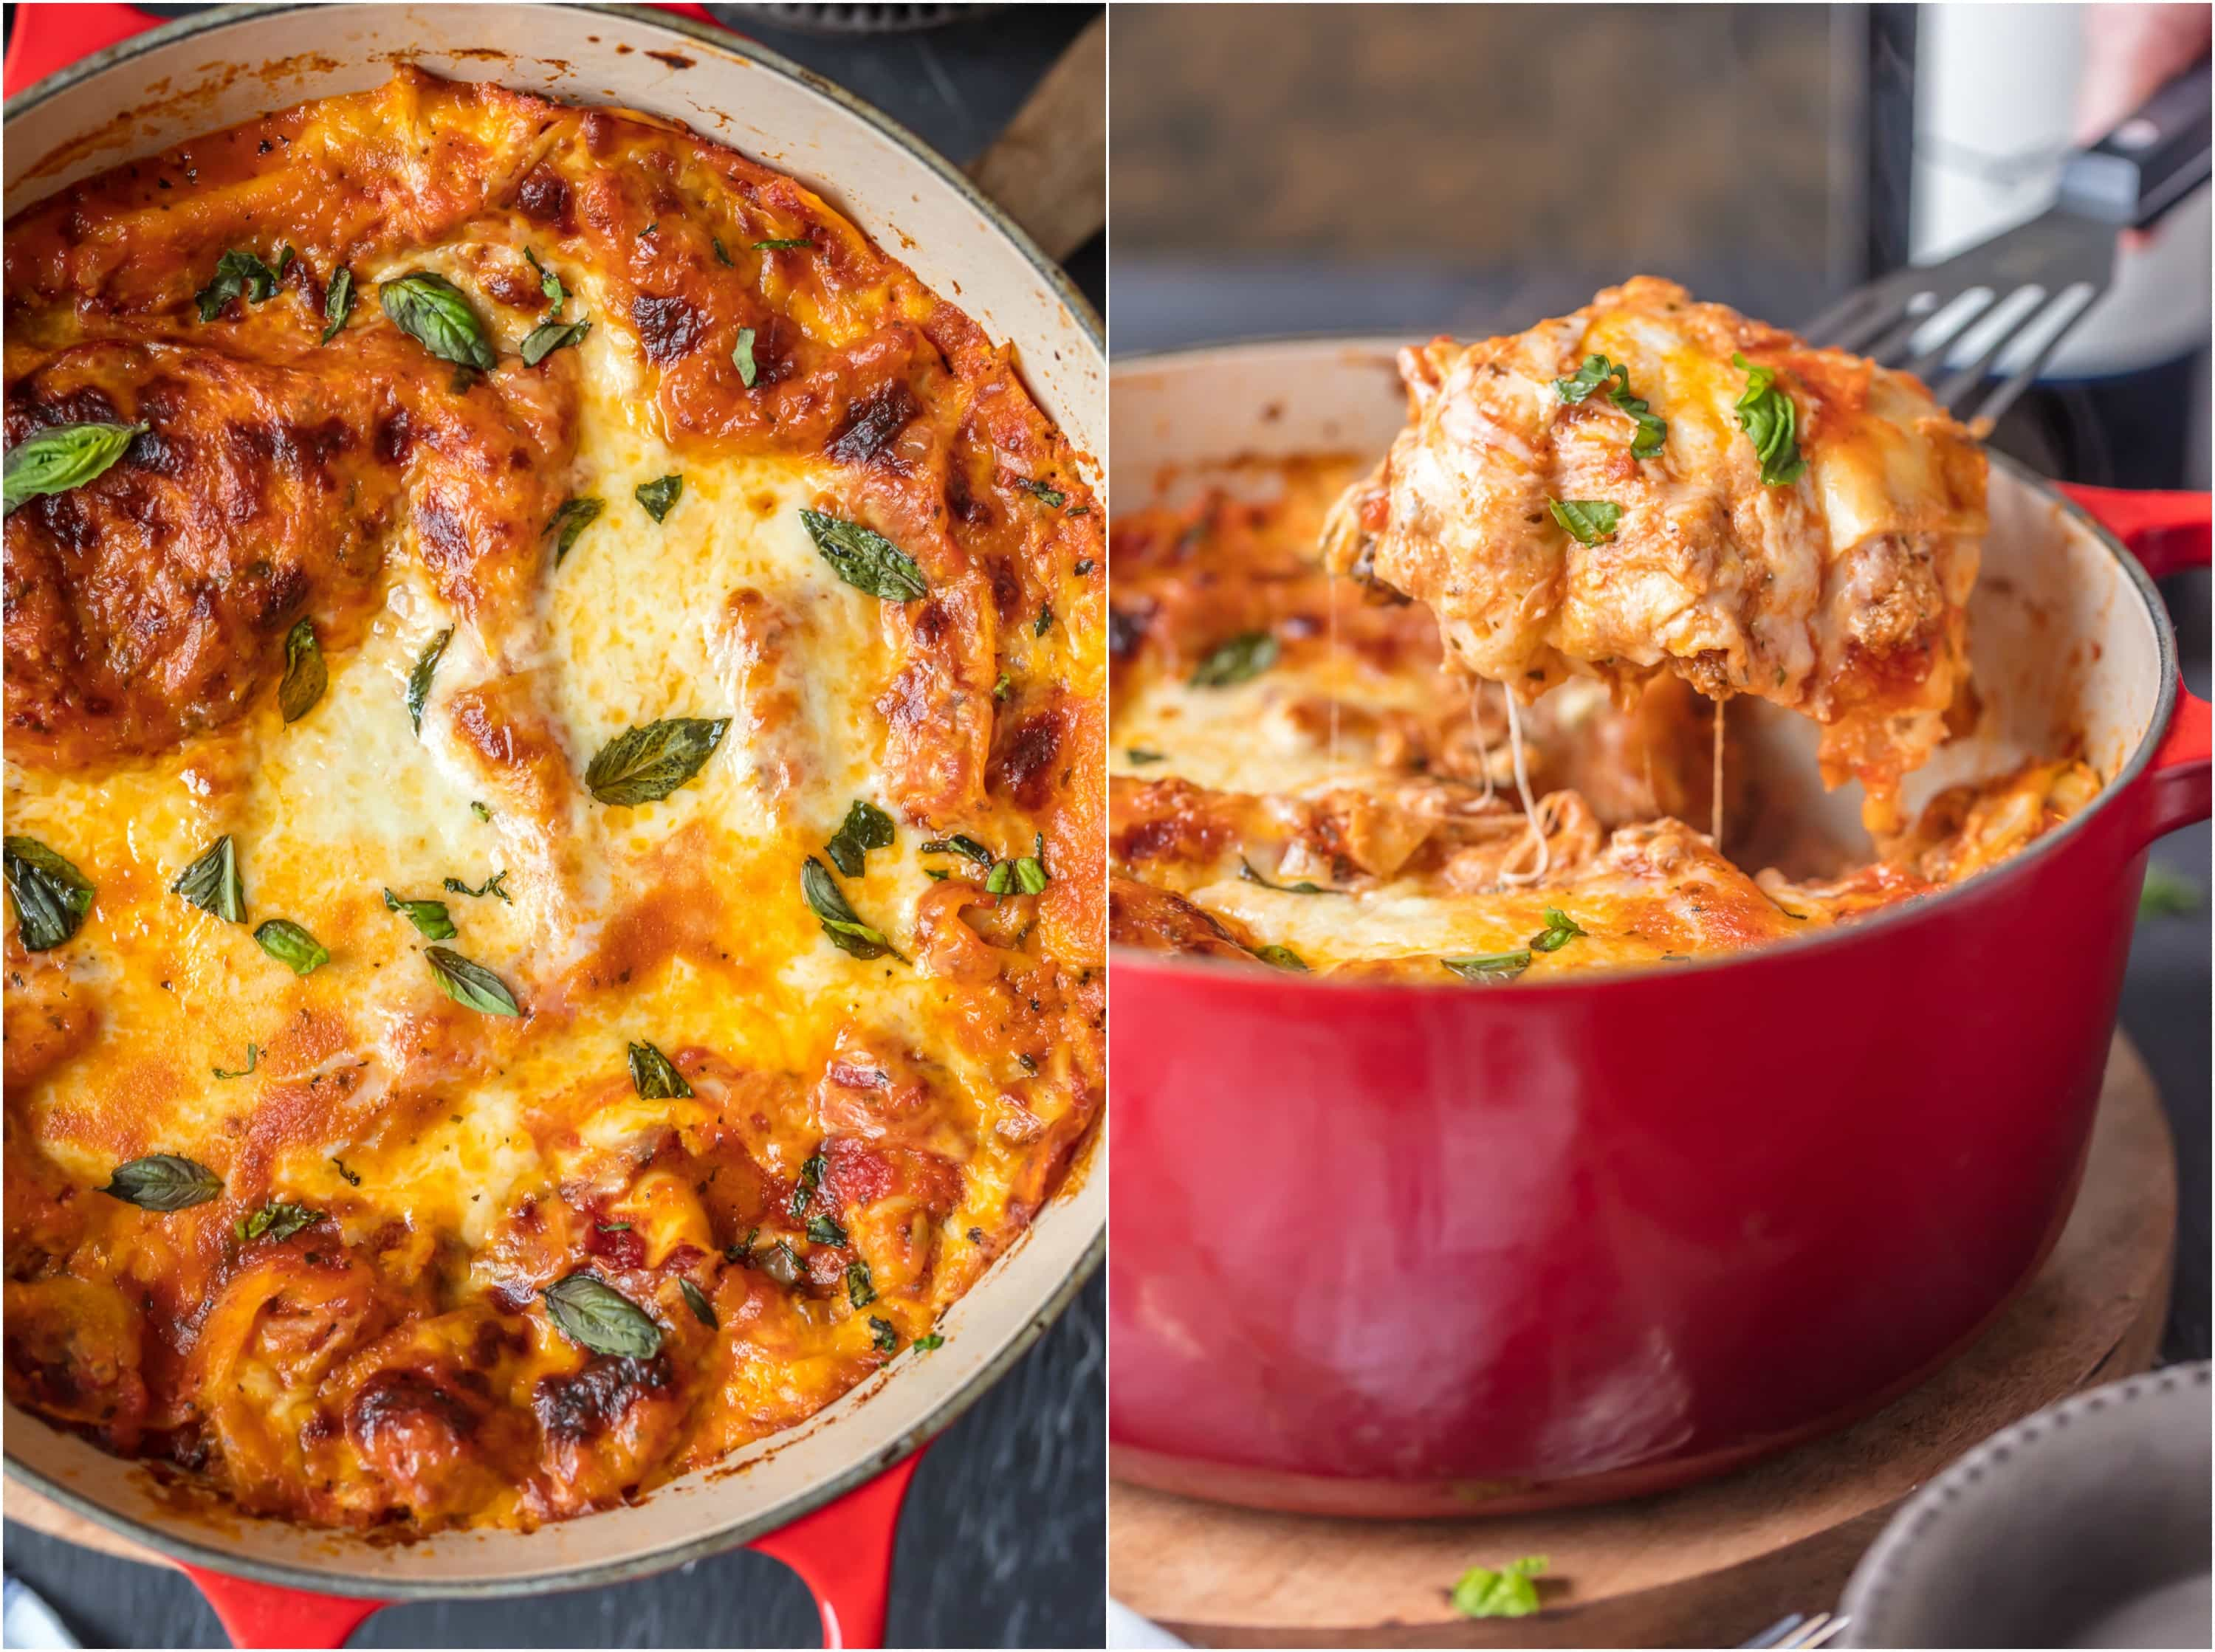 This DUTCH OVEN LASAGNA will blow your mind! You'll never make traditional lasagna again after making this easy stove-top version. We are addicted to this recipe!